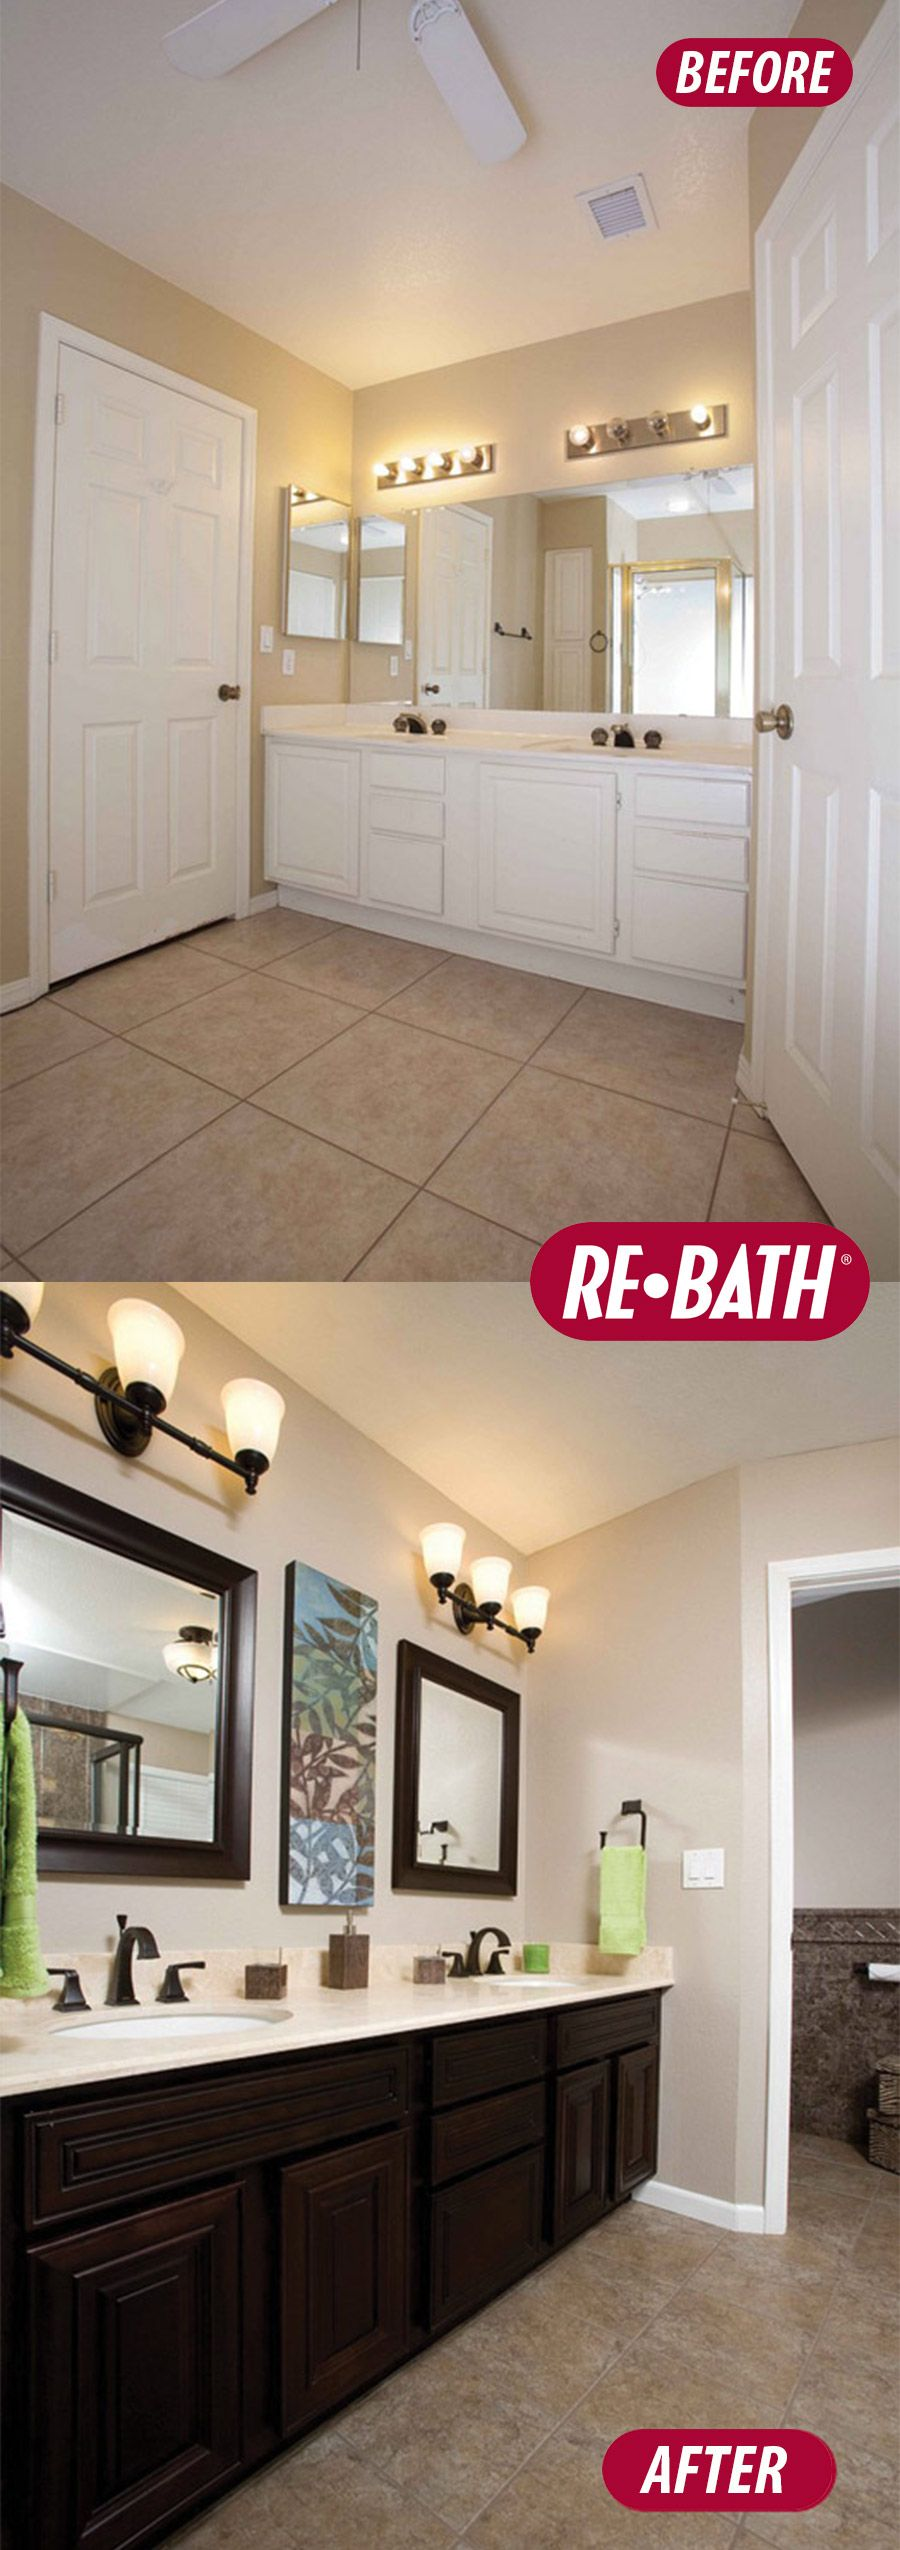 rebath bathroom remodel before and after vanity